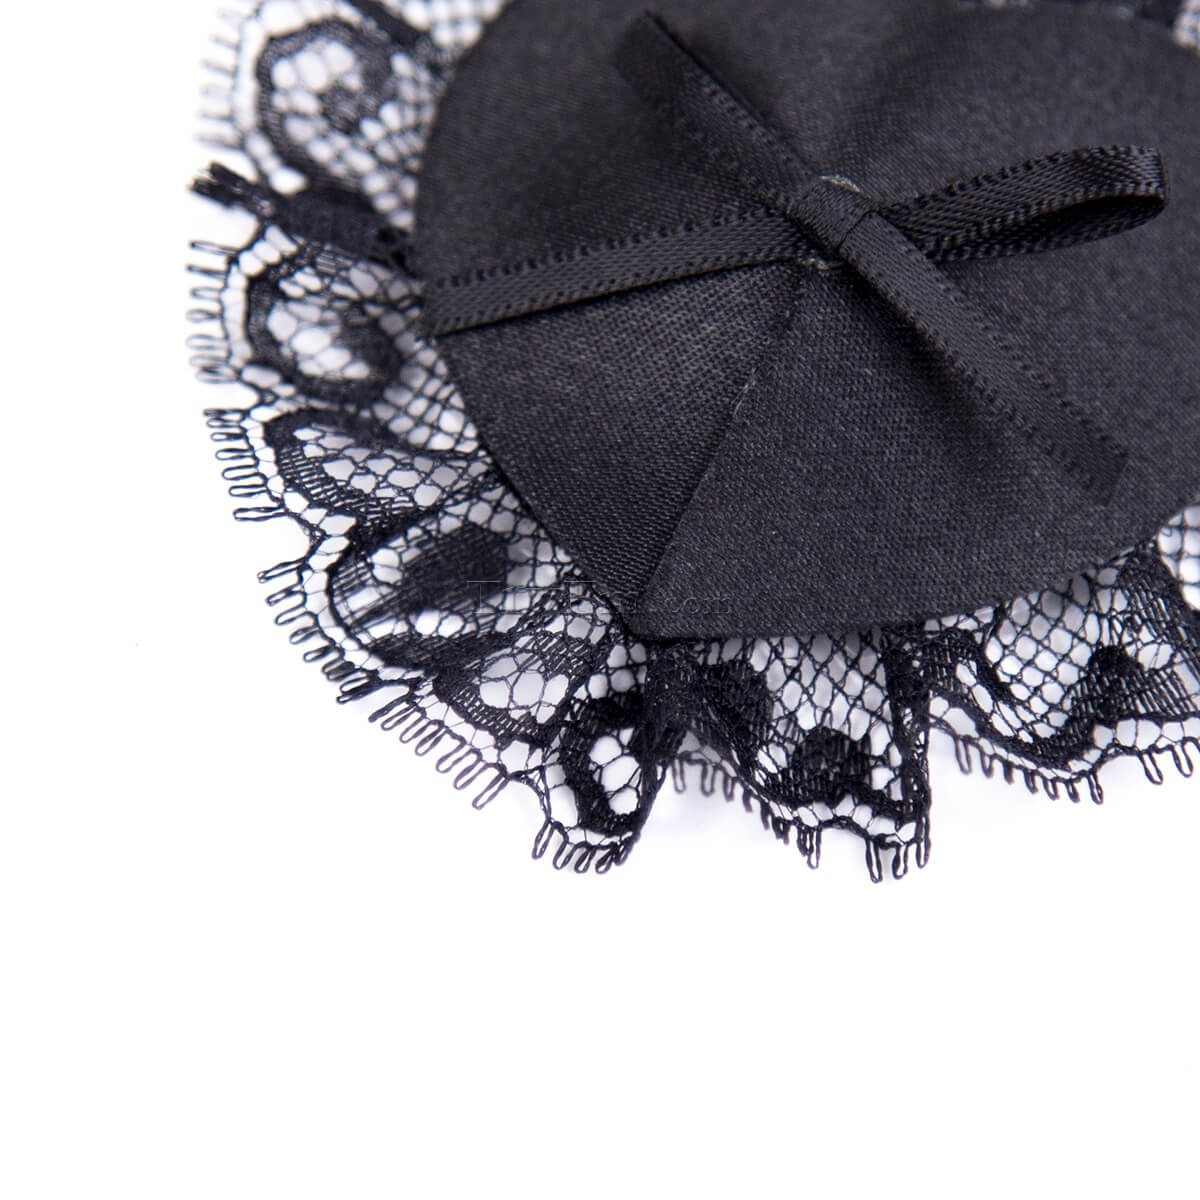 4-Black-lace-bow-knot-pasties7.jpg